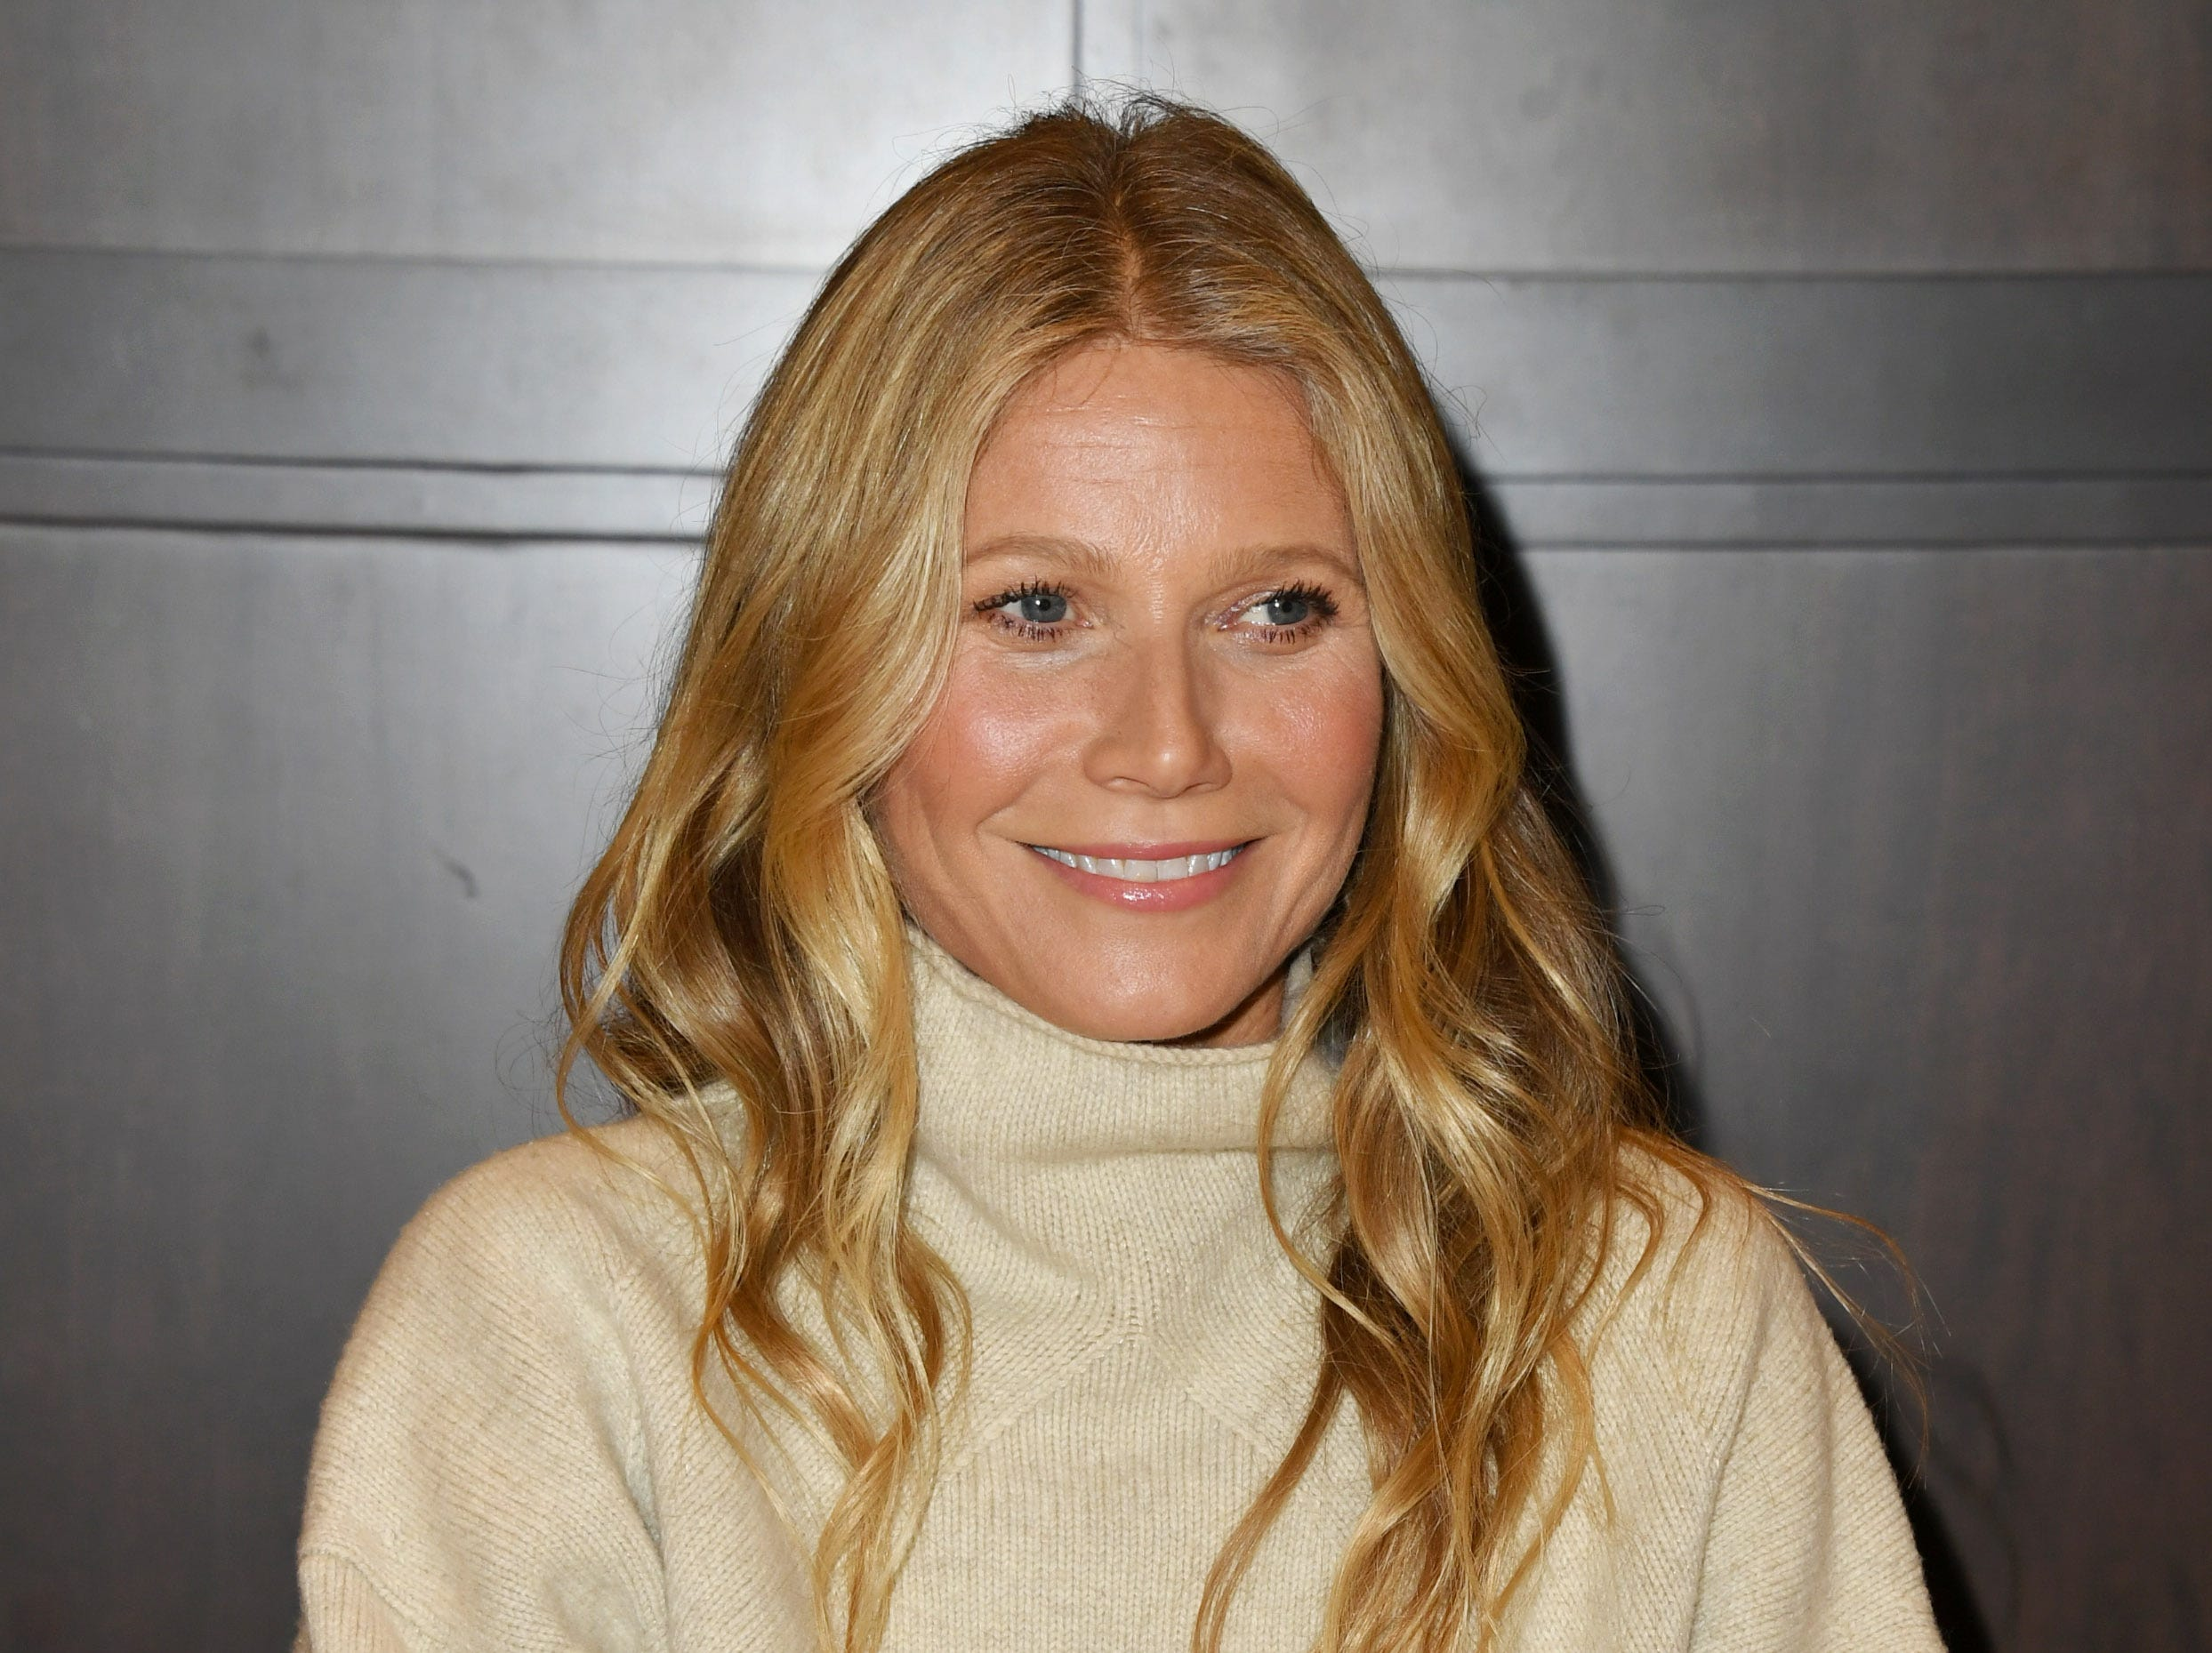 "LOS ANGELES, CALIFORNIA - JANUARY 14: Gwyneth Paltrow Signs Copies Of Her New Book ""The Clean Plate"" at Barnes & Noble at The Grove on January 14, 2019 in Los Angeles, California. (Photo by Jon Kopaloff/Getty Images) ORG XMIT: 775277367 ORIG FILE ID: 1094302880"